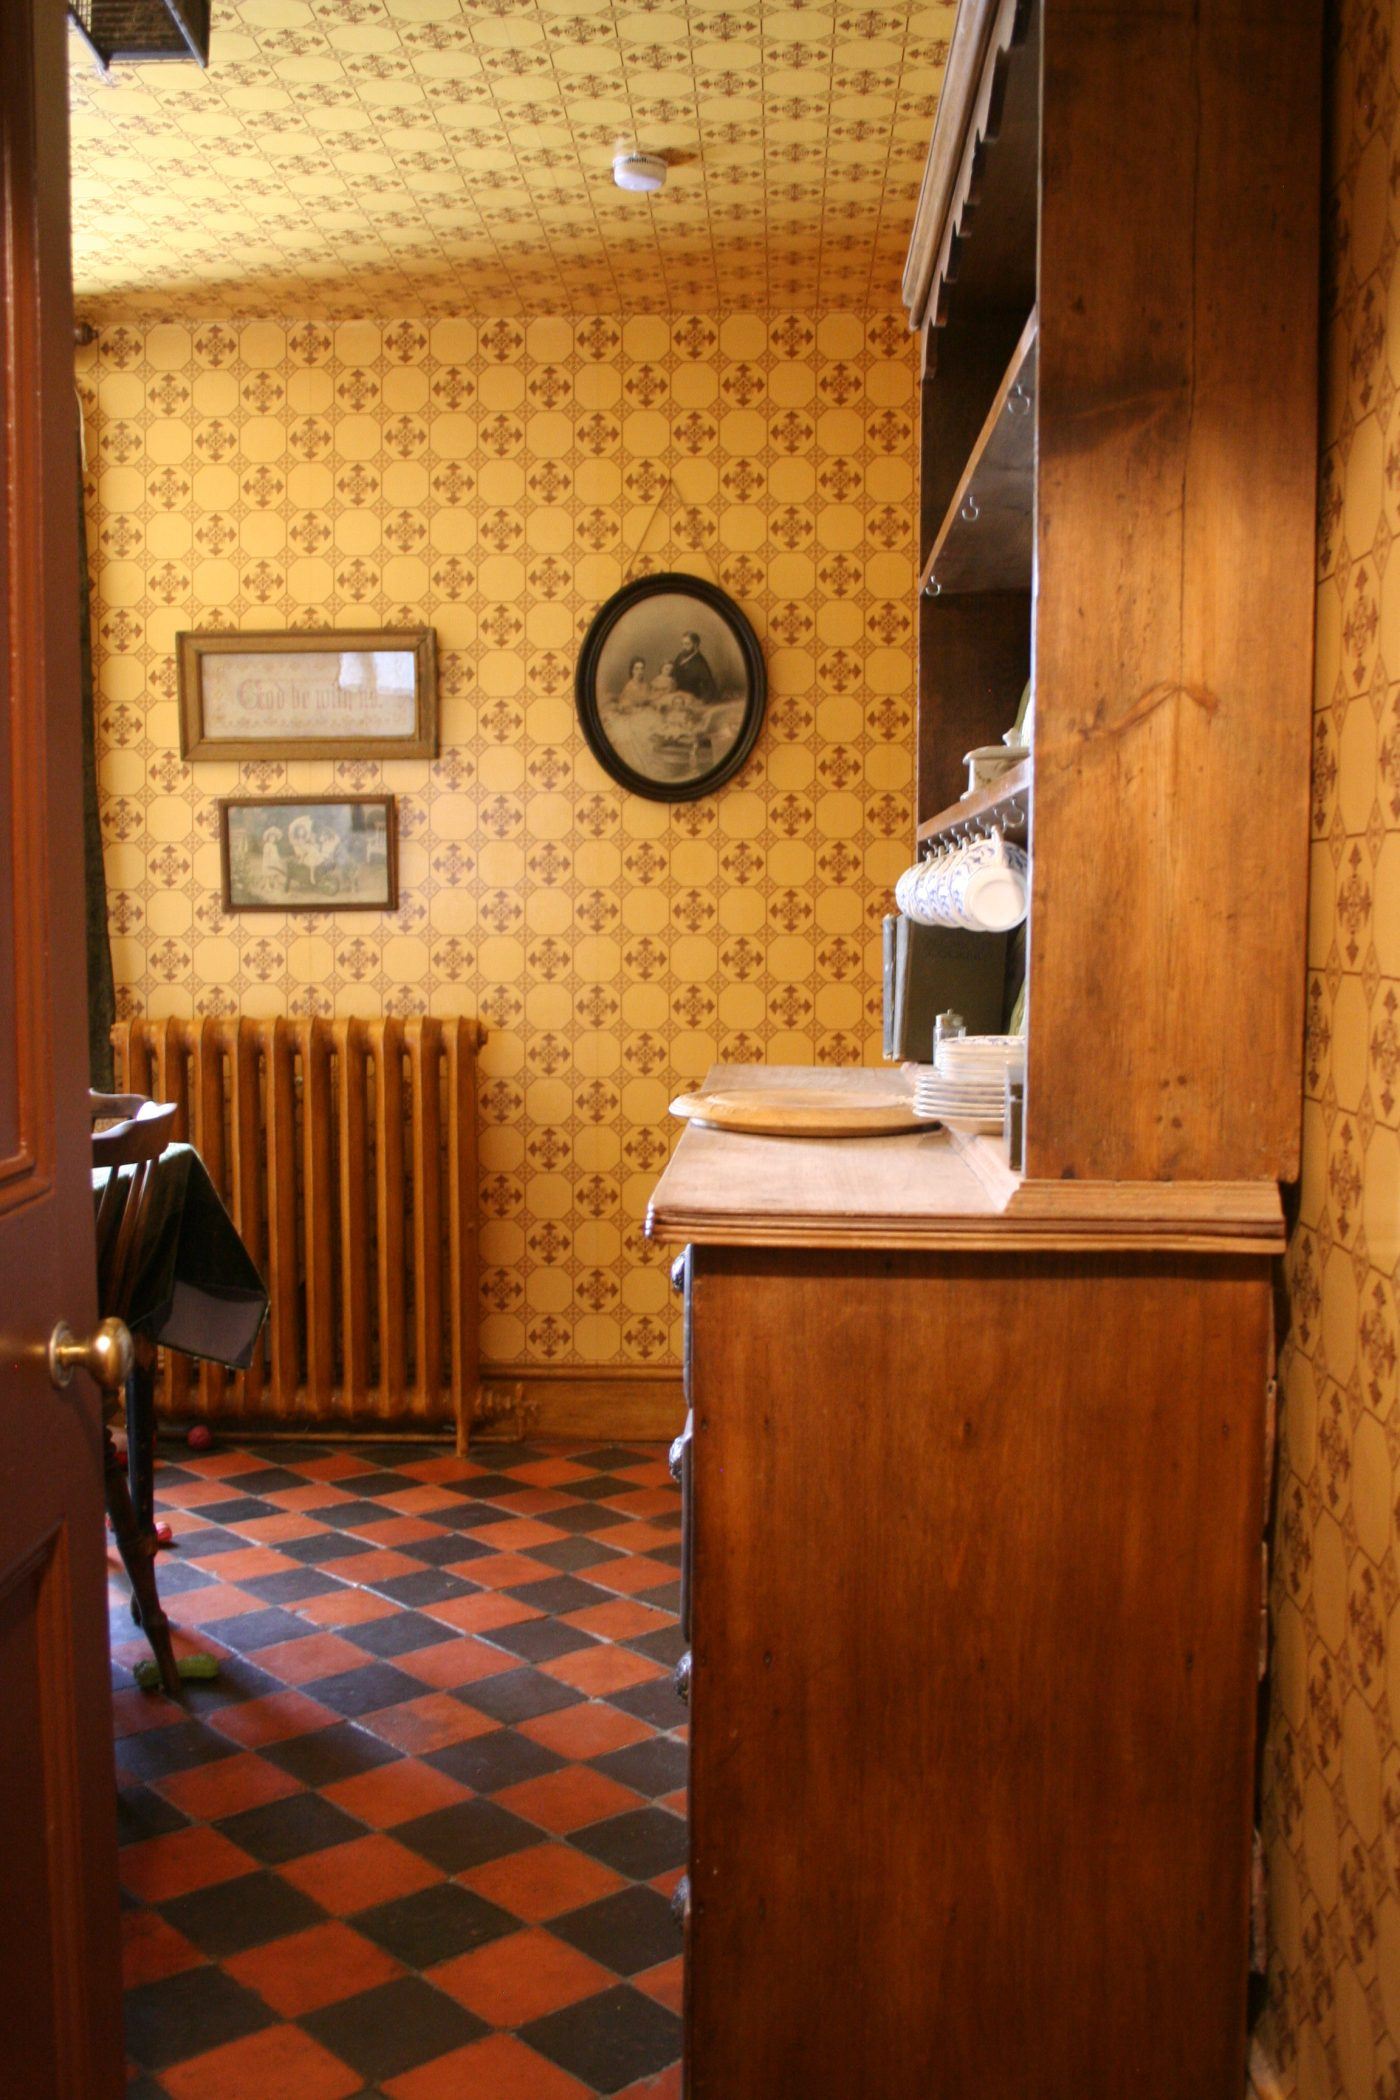 Modern conveniences - woodgrained radiator in my Victorian kitchen showing quarry tiled floor and dresser